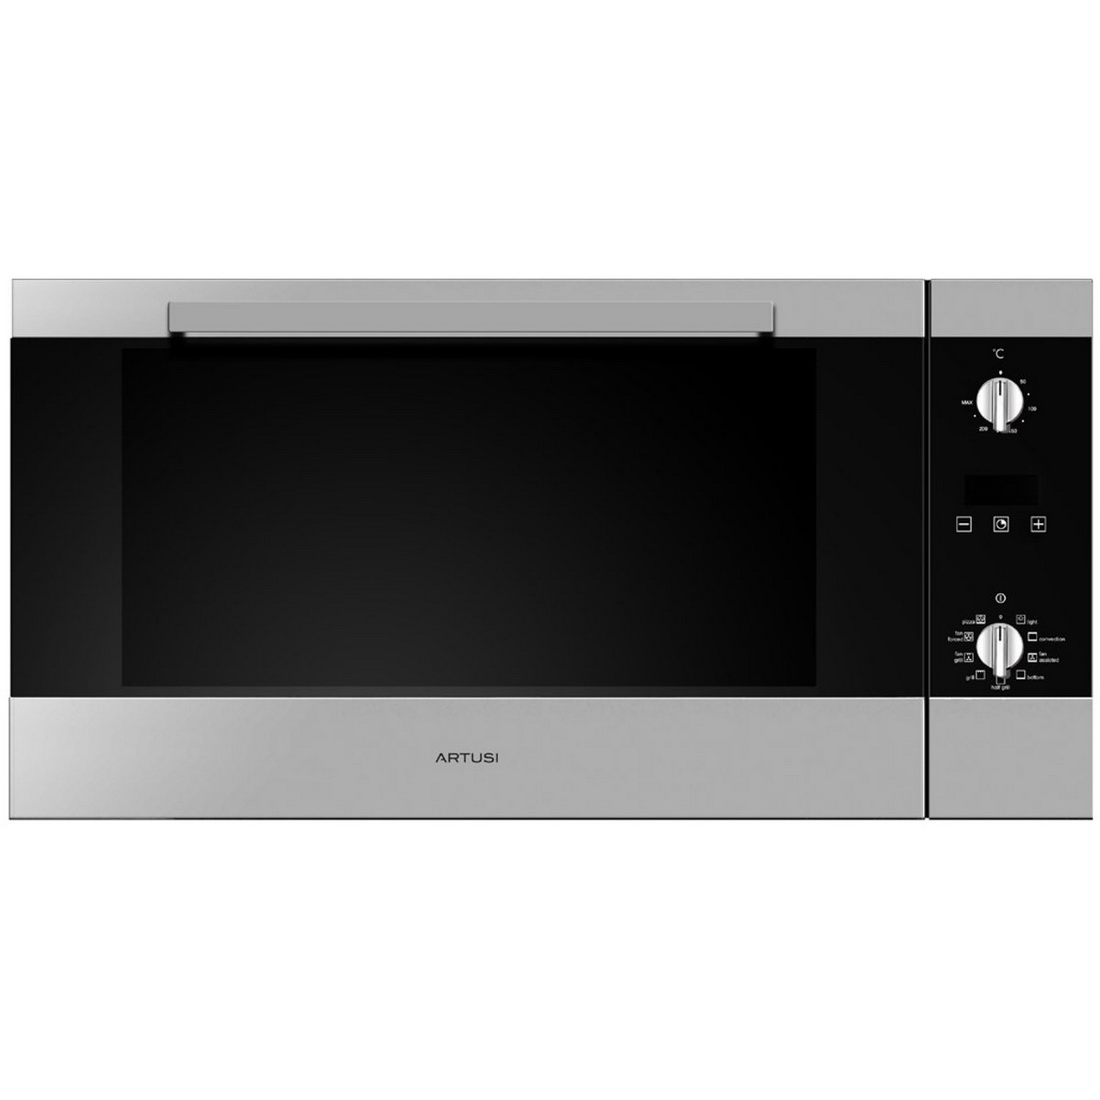 9 Function Built in Oven 90cm 81L Stainless Steel AO900X